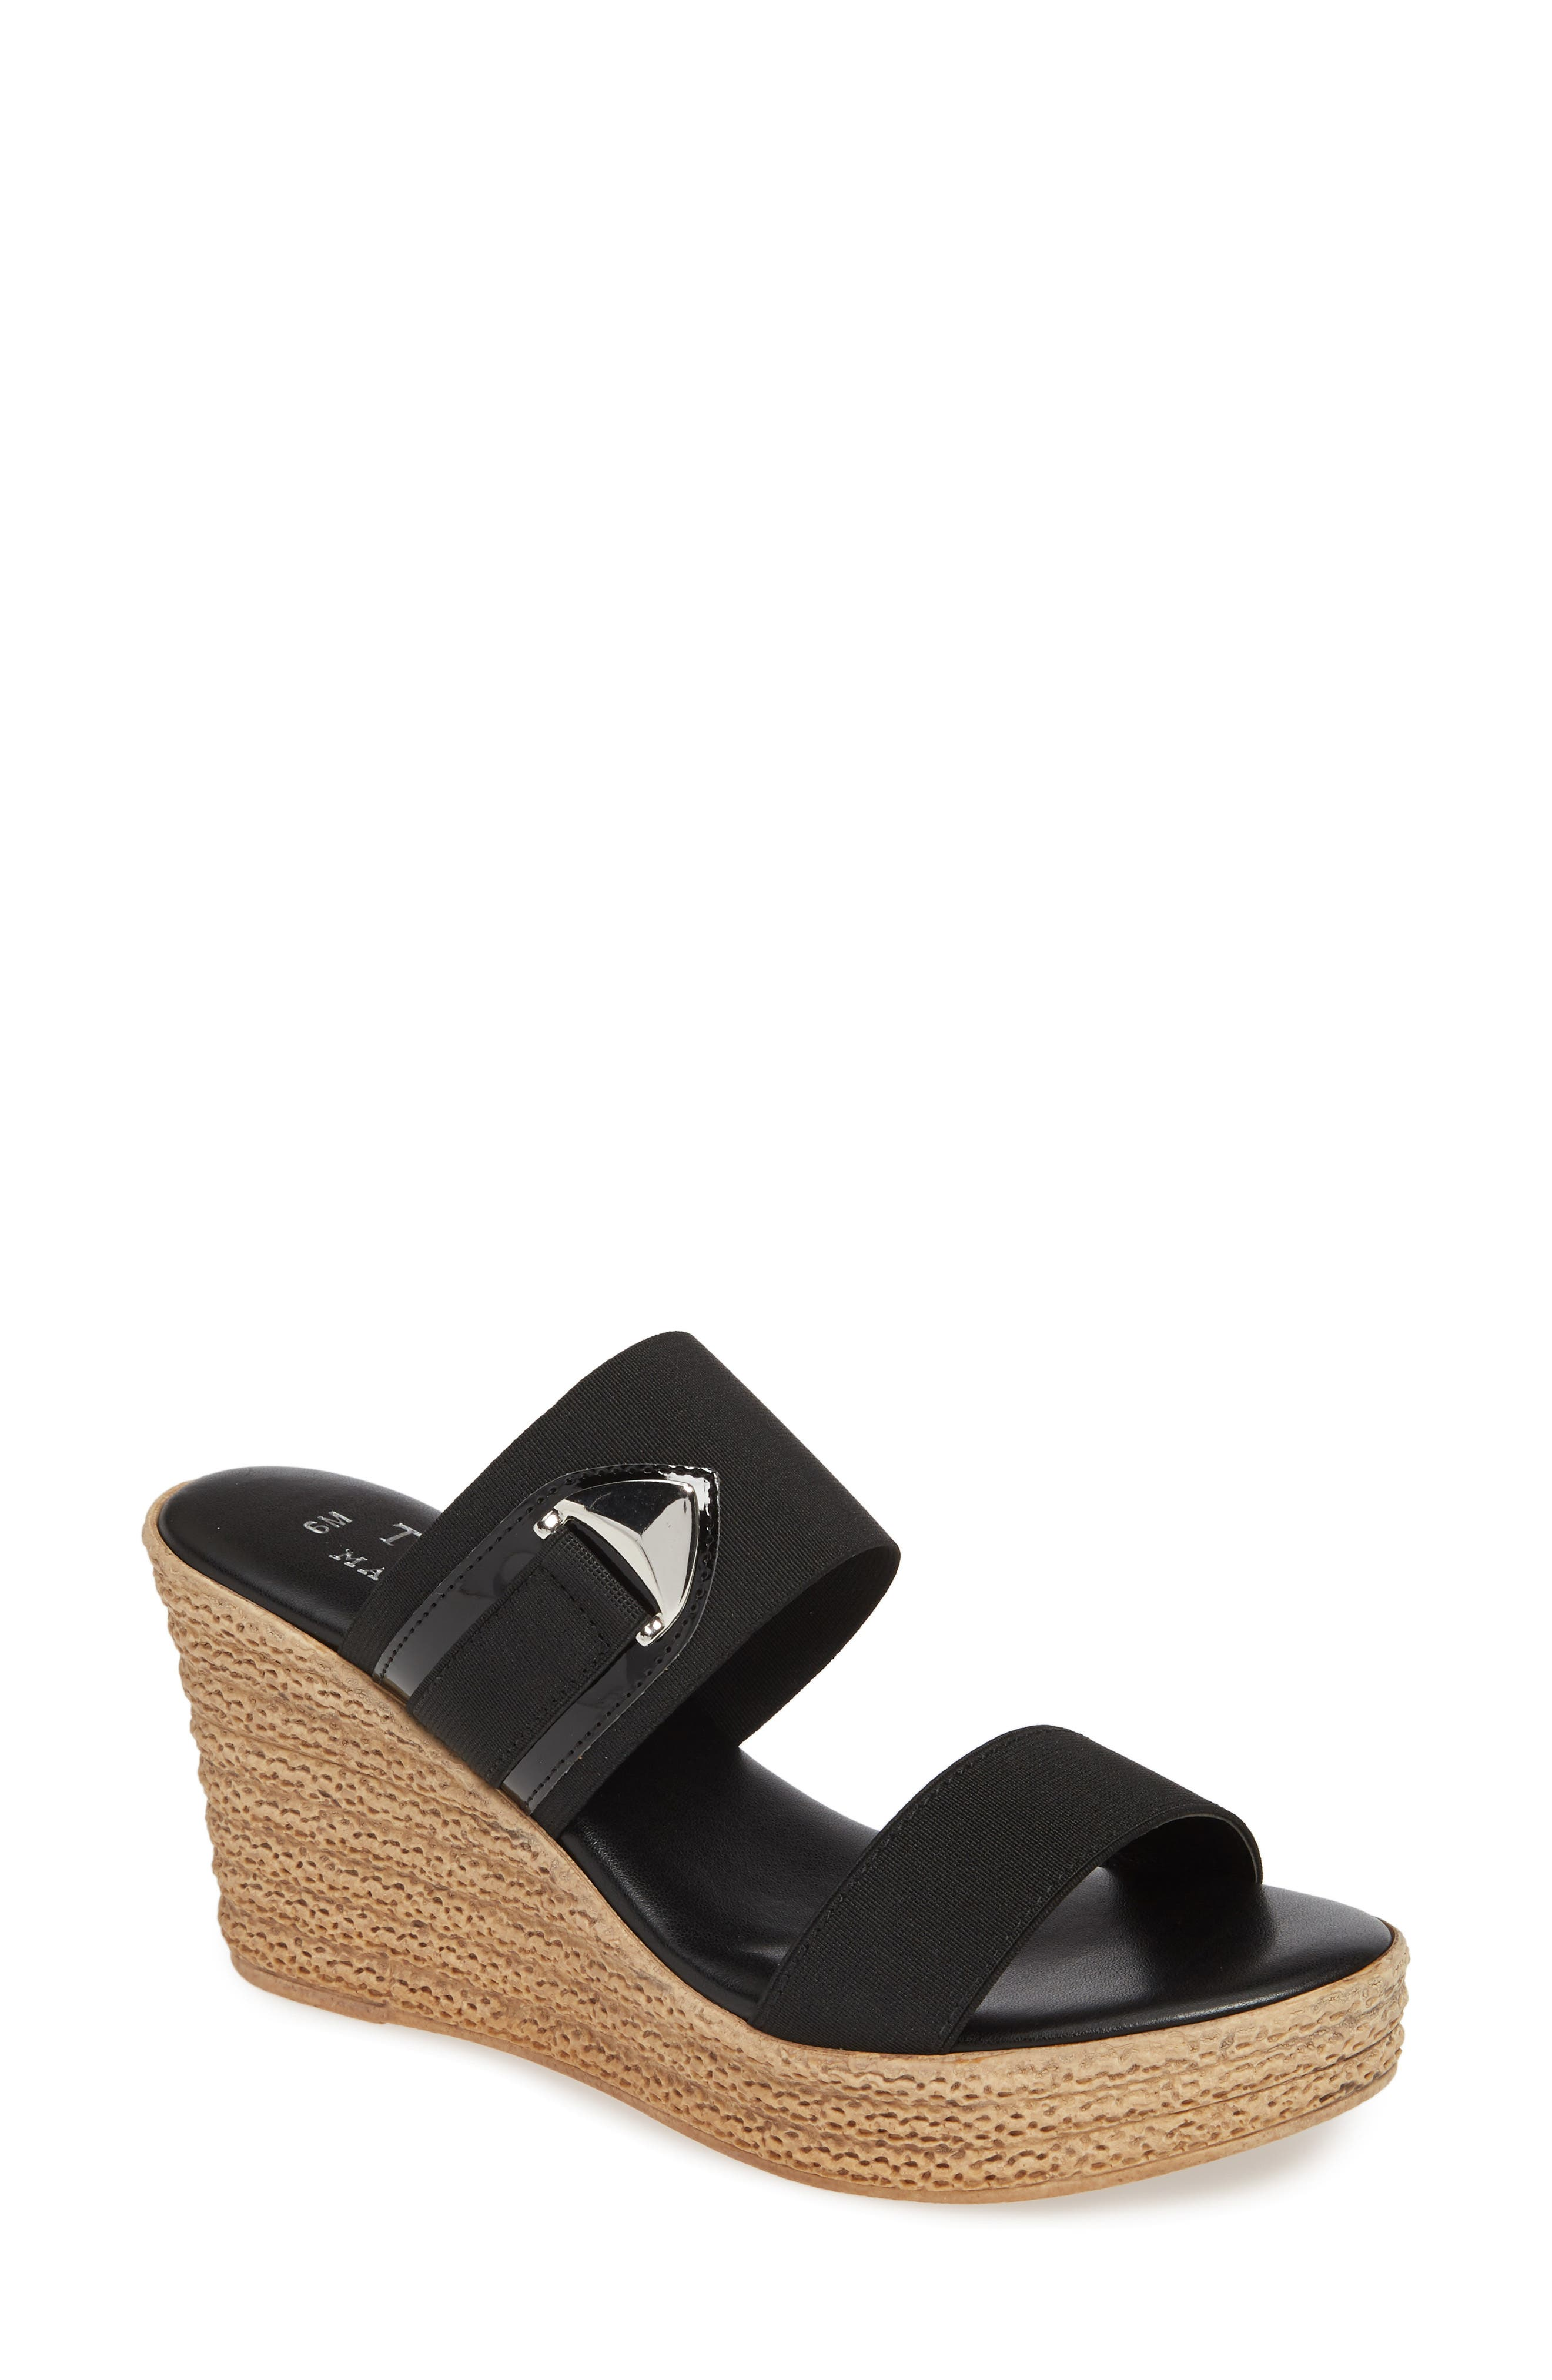 TUSCANY BY EASY STREET<SUP>®</SUP> Marisole Platform Wedge Sandal, Main, color, BLACK LEATHER